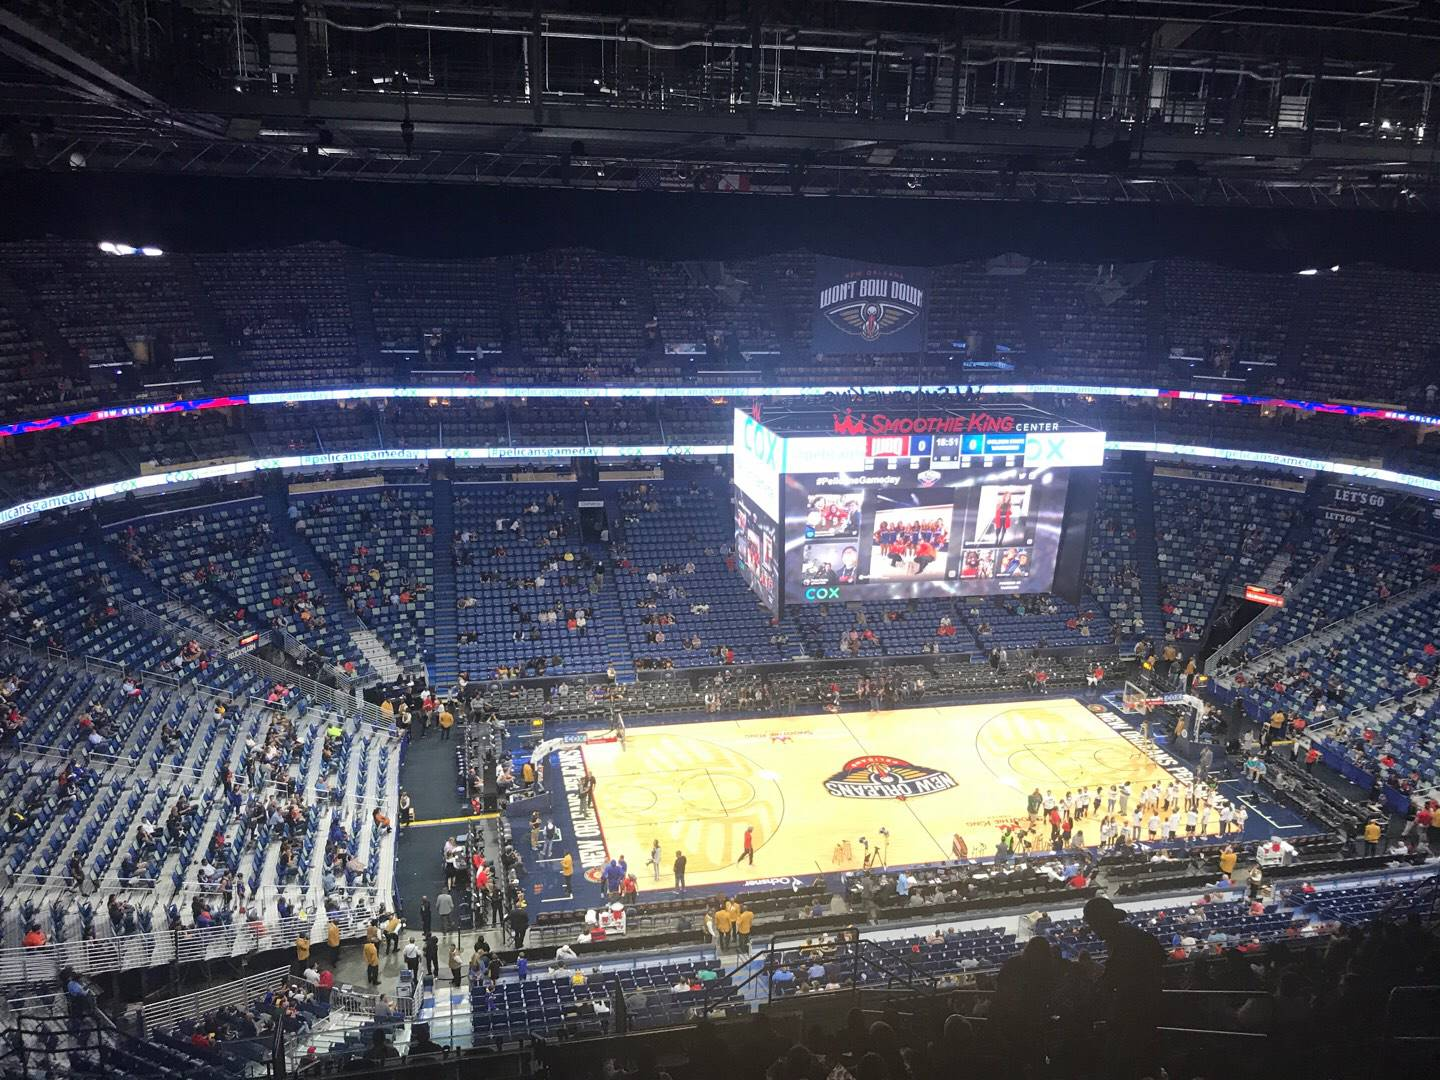 Smoothie King Center Section 318 Row 19 Seat 9